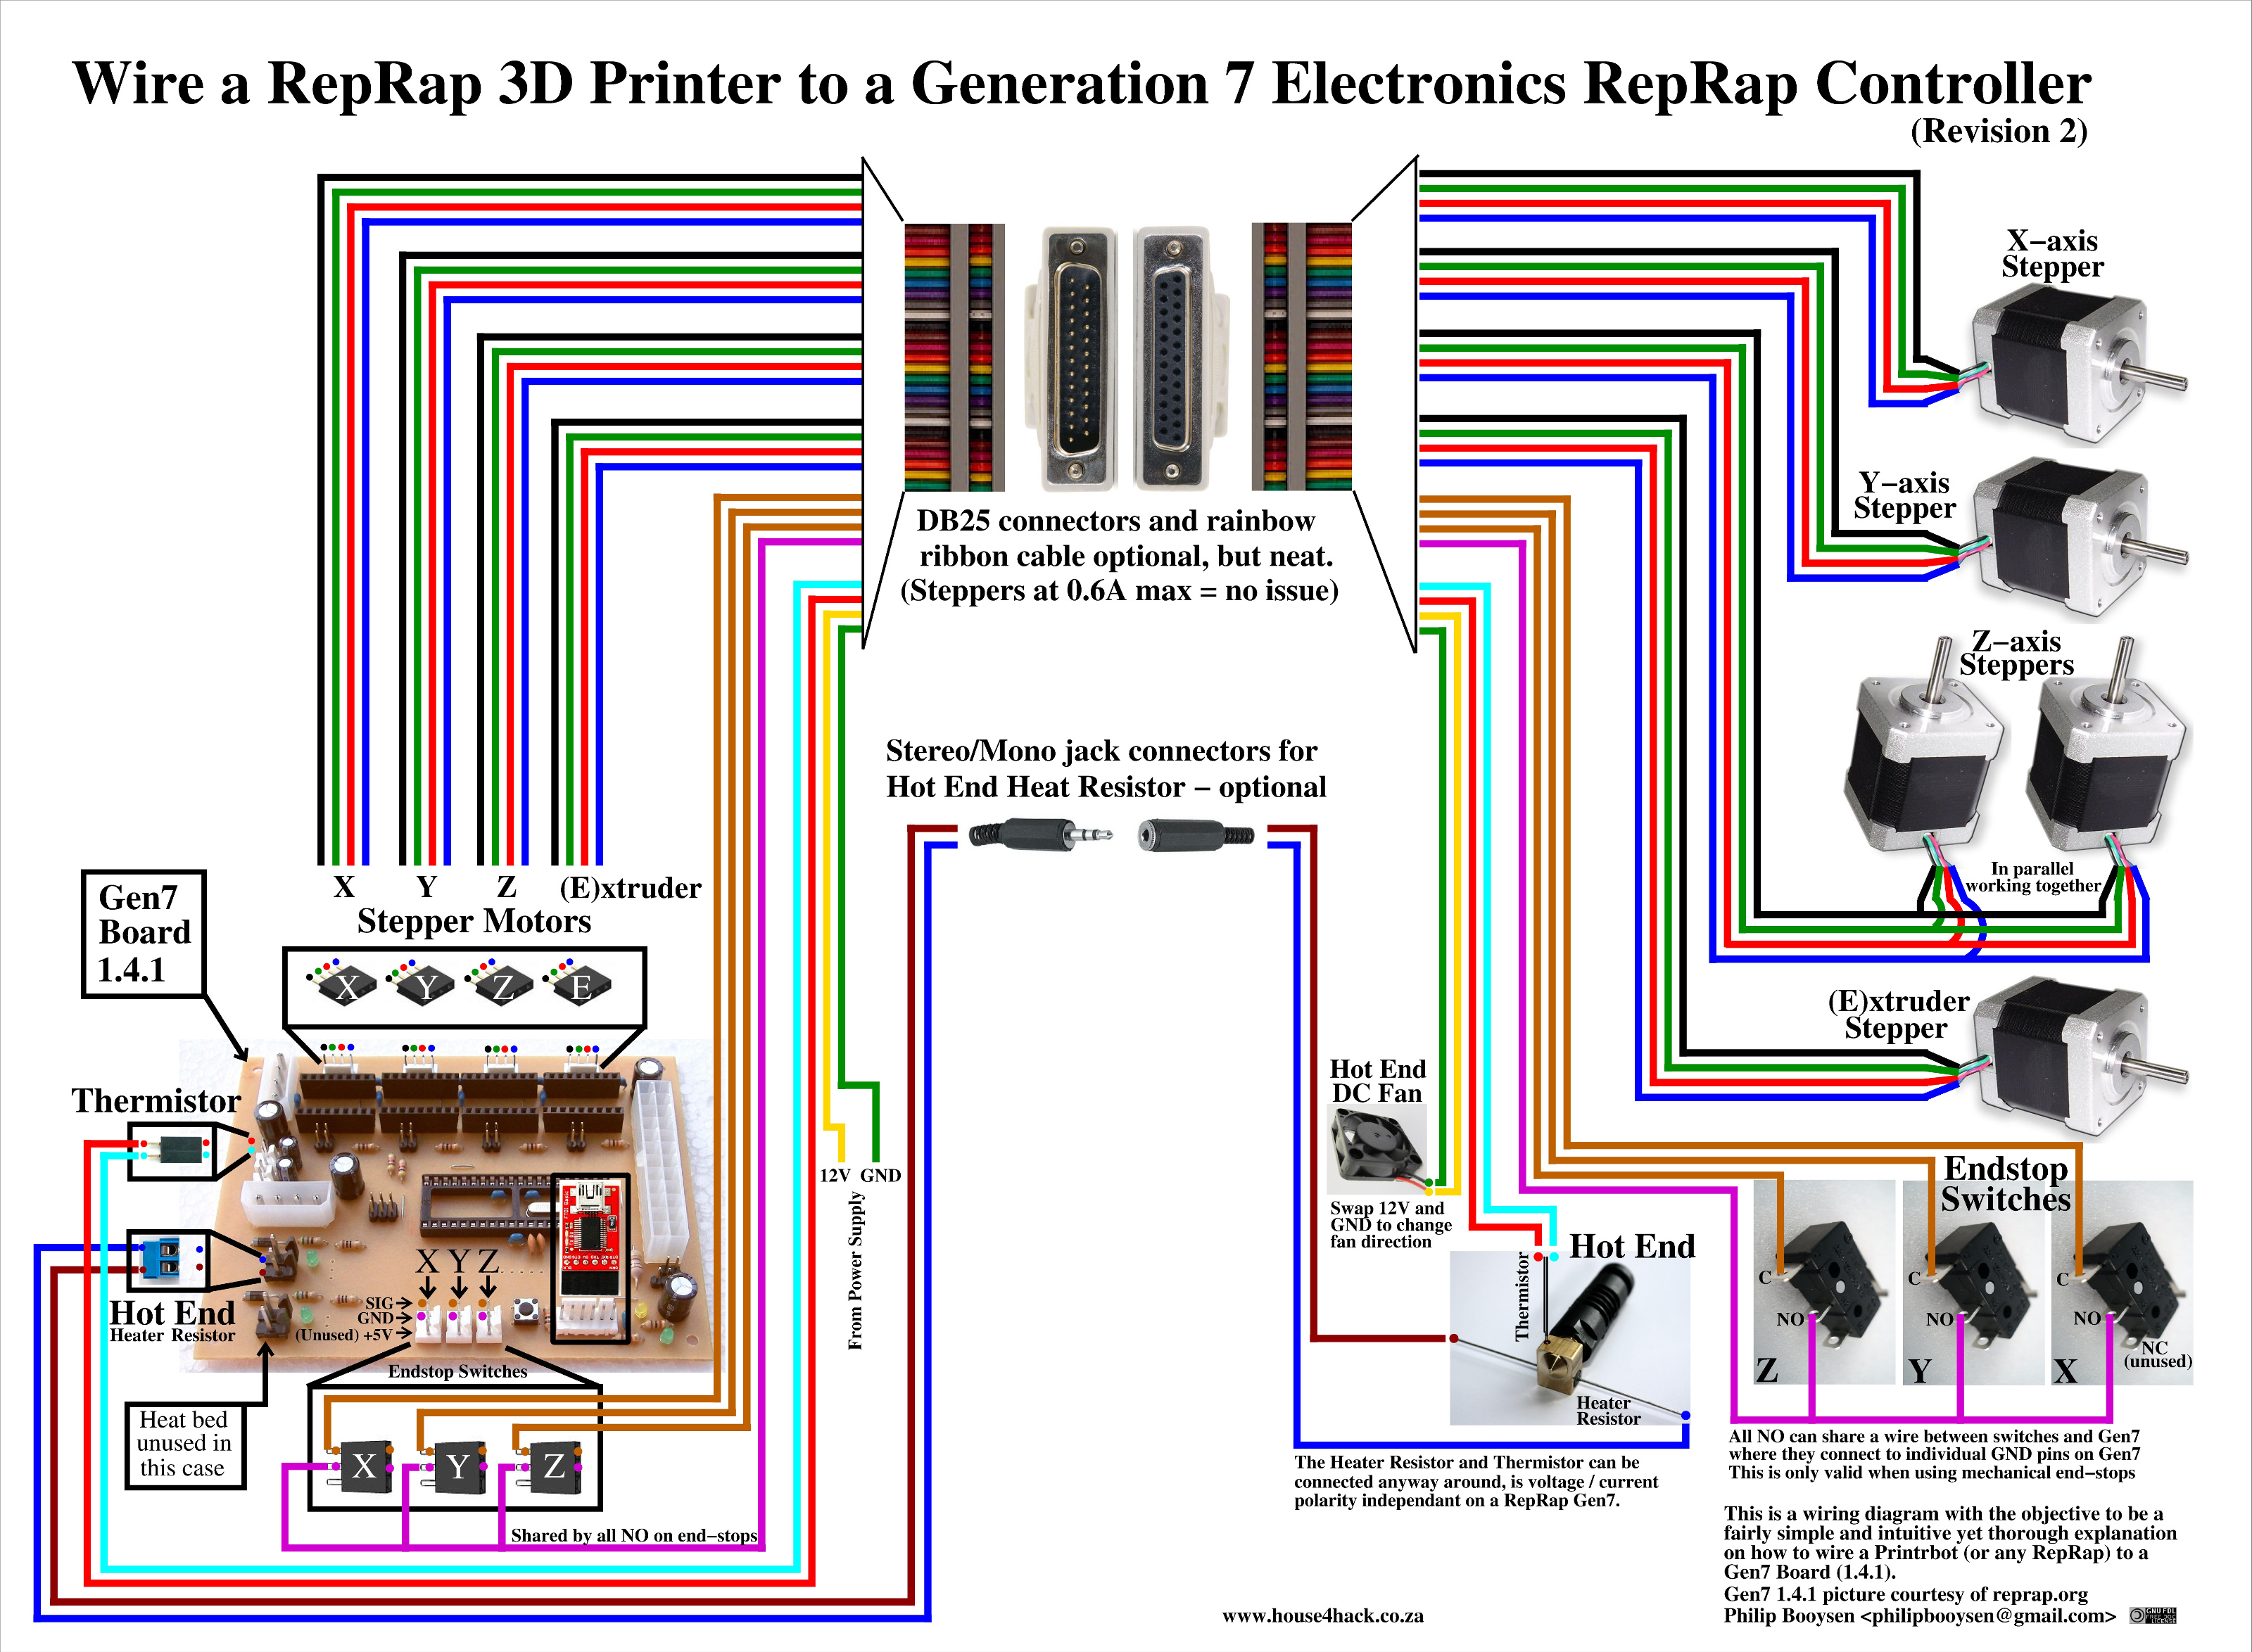 ramps wiring diagram ramps image wiring diagram gen7 board avr 1 5 reprapwiki on ramps 1 4 wiring diagram